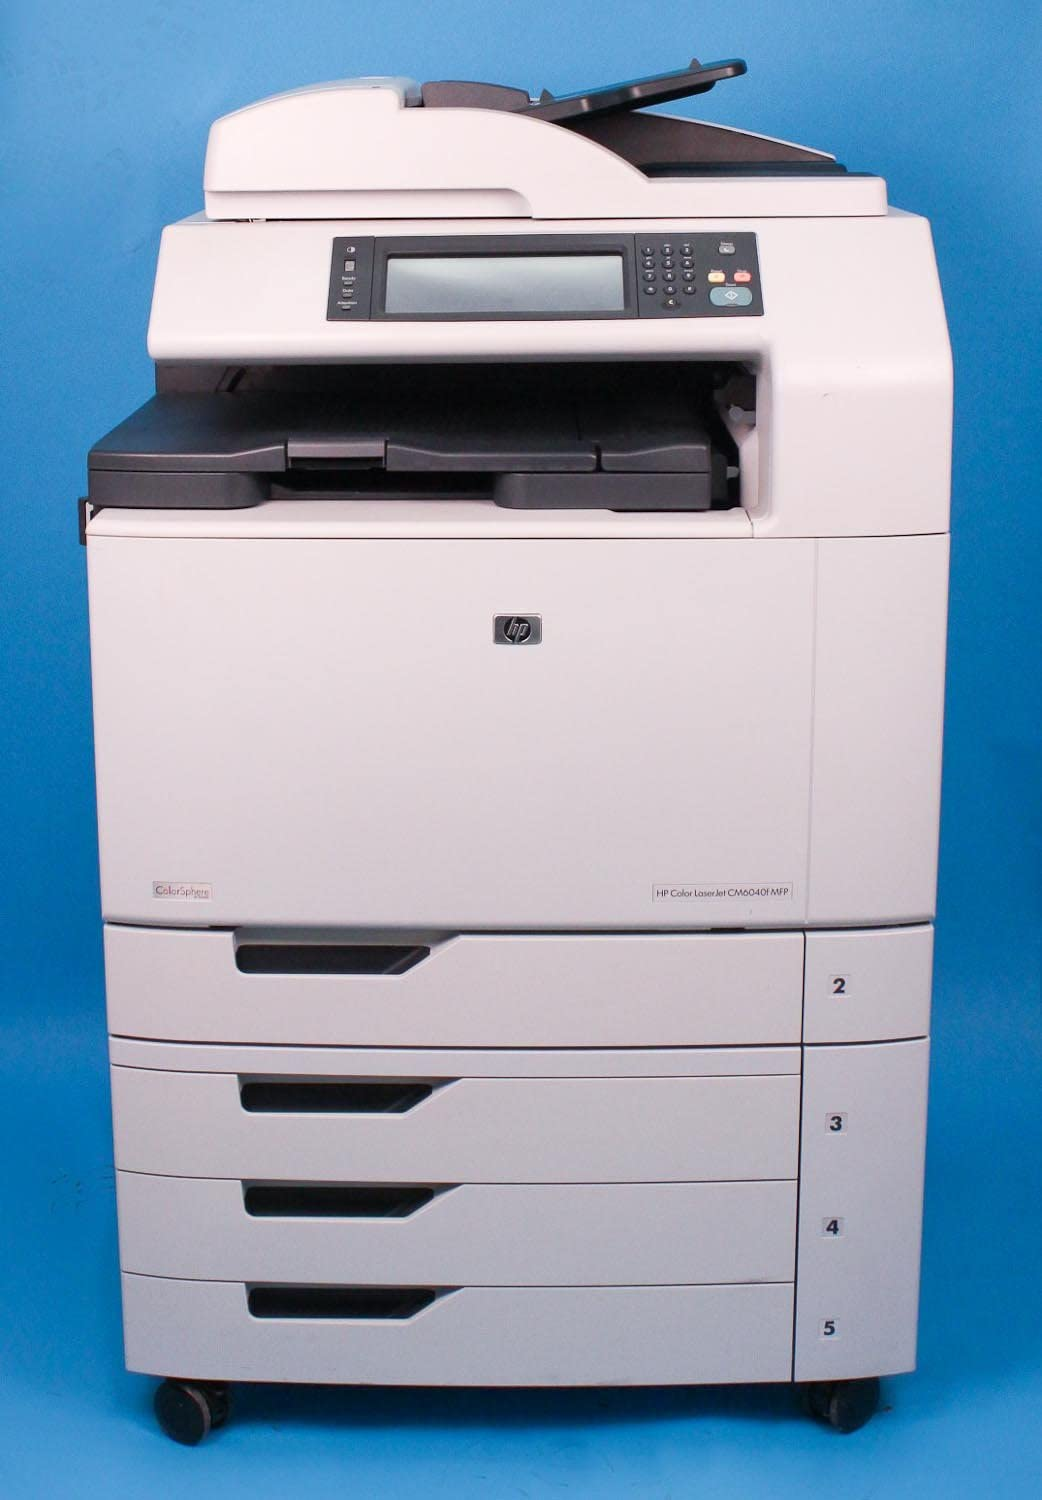 HP Q3939A Color LaserJet CM6040f MFP - Multifunction printer - color - laser - Ledger/A3 (11.7 in x 17 in) (original) - A3 (297 x 420 mm), ANSI B (Ledger) (279 x 432 mm) (media) - up to 40 ppm (copying) - up to 40 ppm (printing) - 2100 sheets - 33.6 Kbps - USB 2.0, Gigabit LAN, USB host